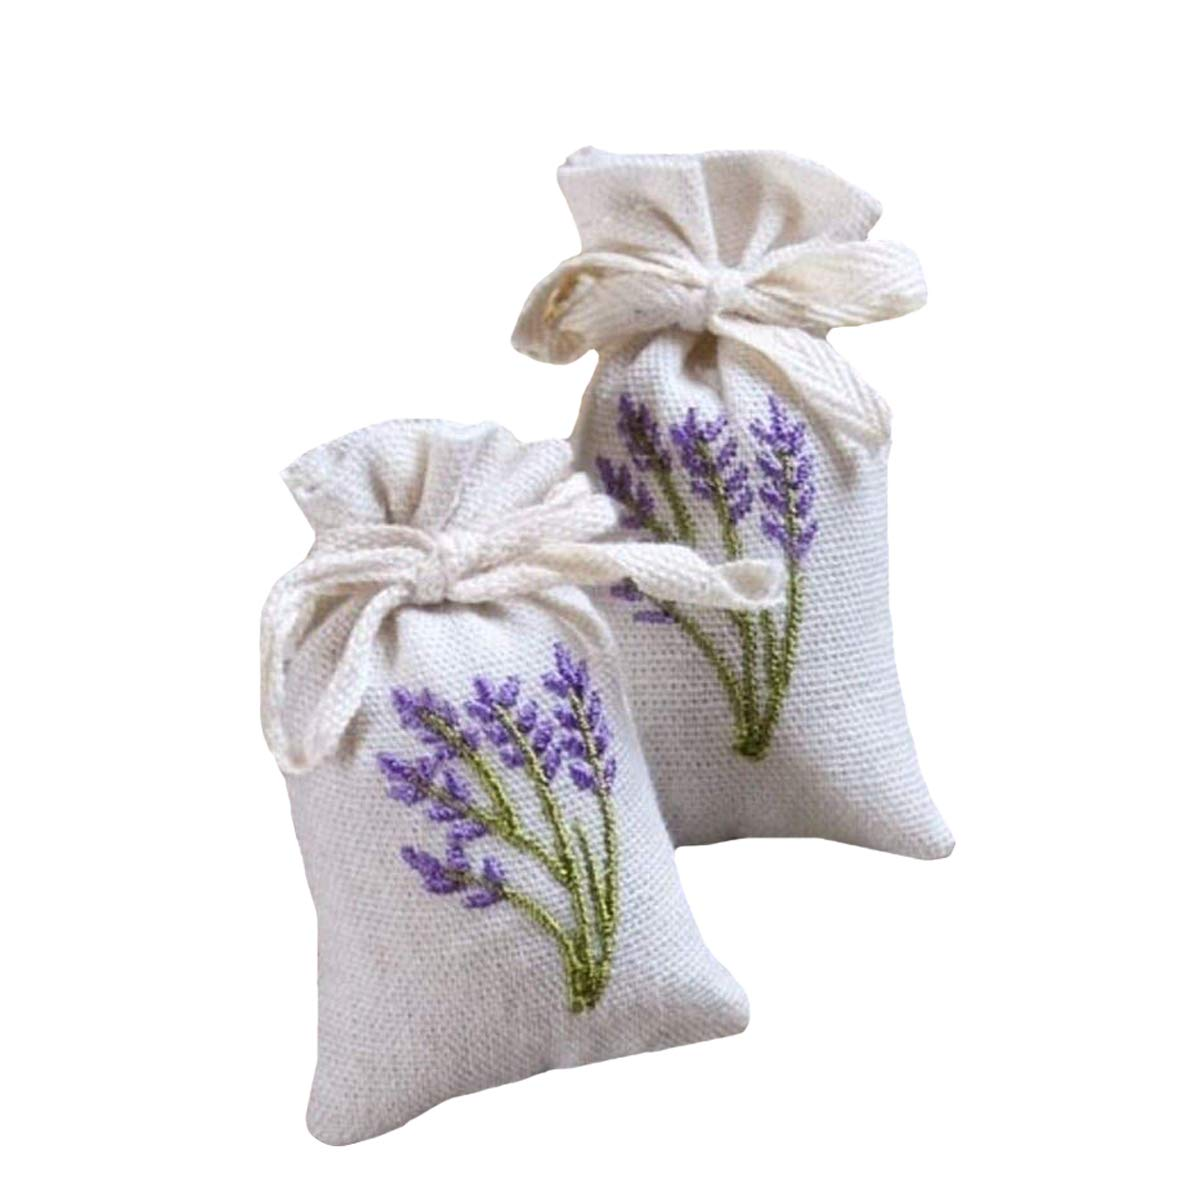 Mini Portable Handmade Aromatherapy Decorated Scented Sachet For Closet/Car/Drawer (50, Lavender)